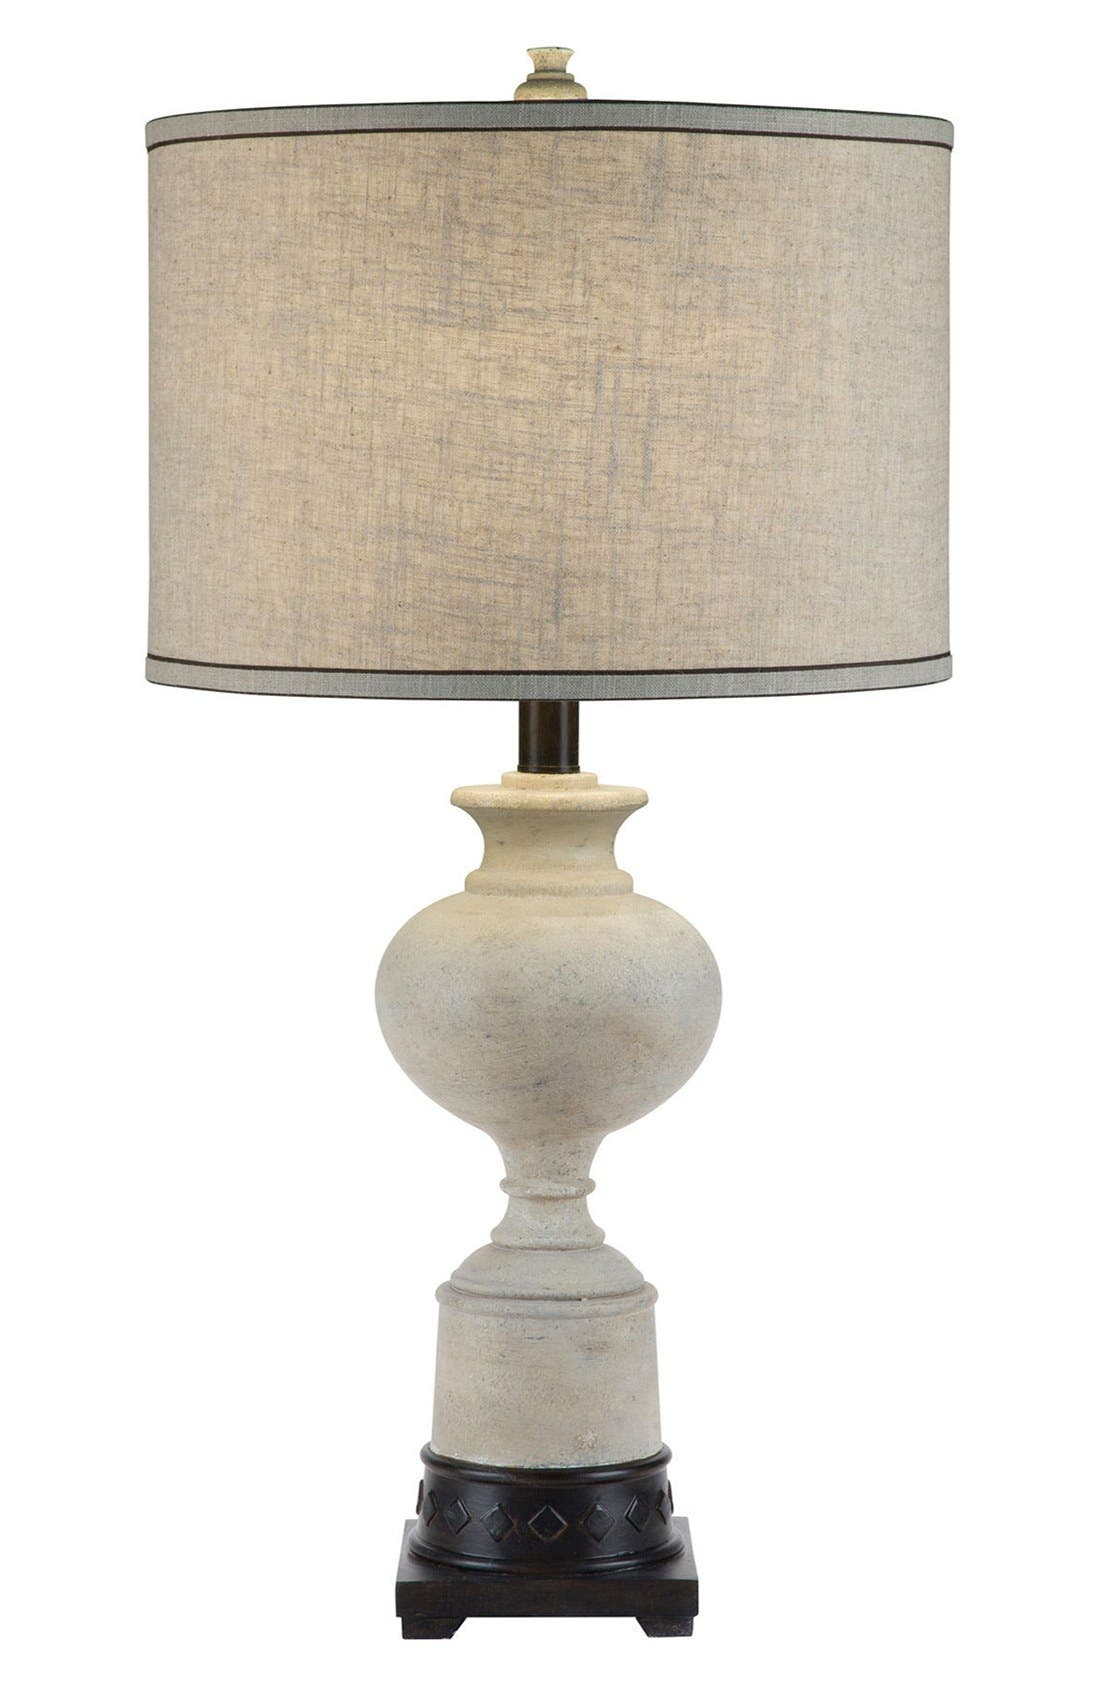 Alternate Image 1 Selected - JAlexander 'Trophy' Whitewash Table Lamp